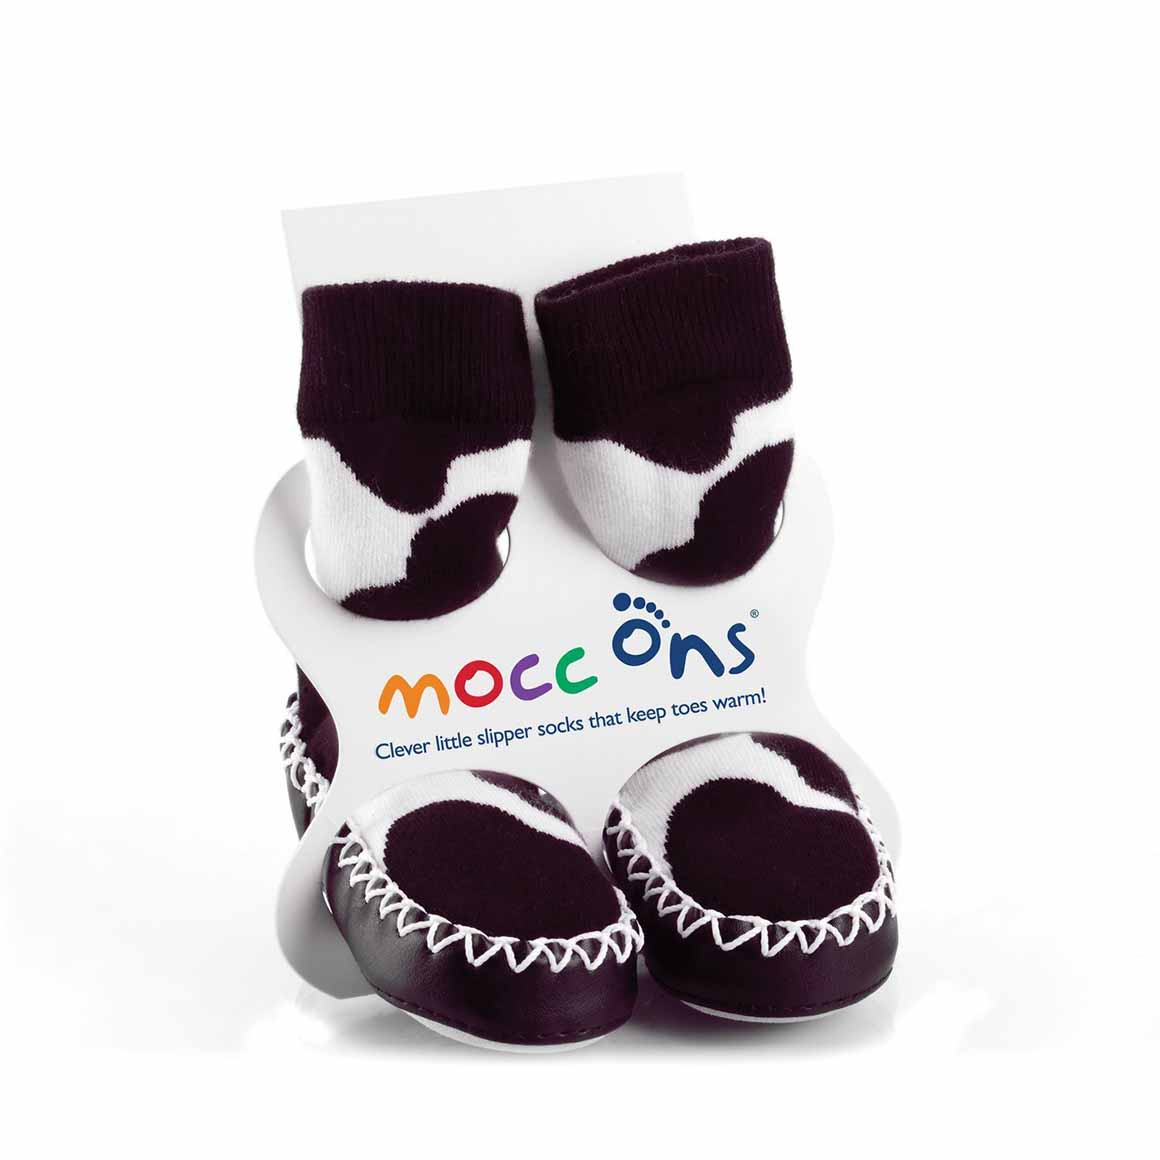 MOCC ONS Cow Print 18-24 | Trada Marketplace